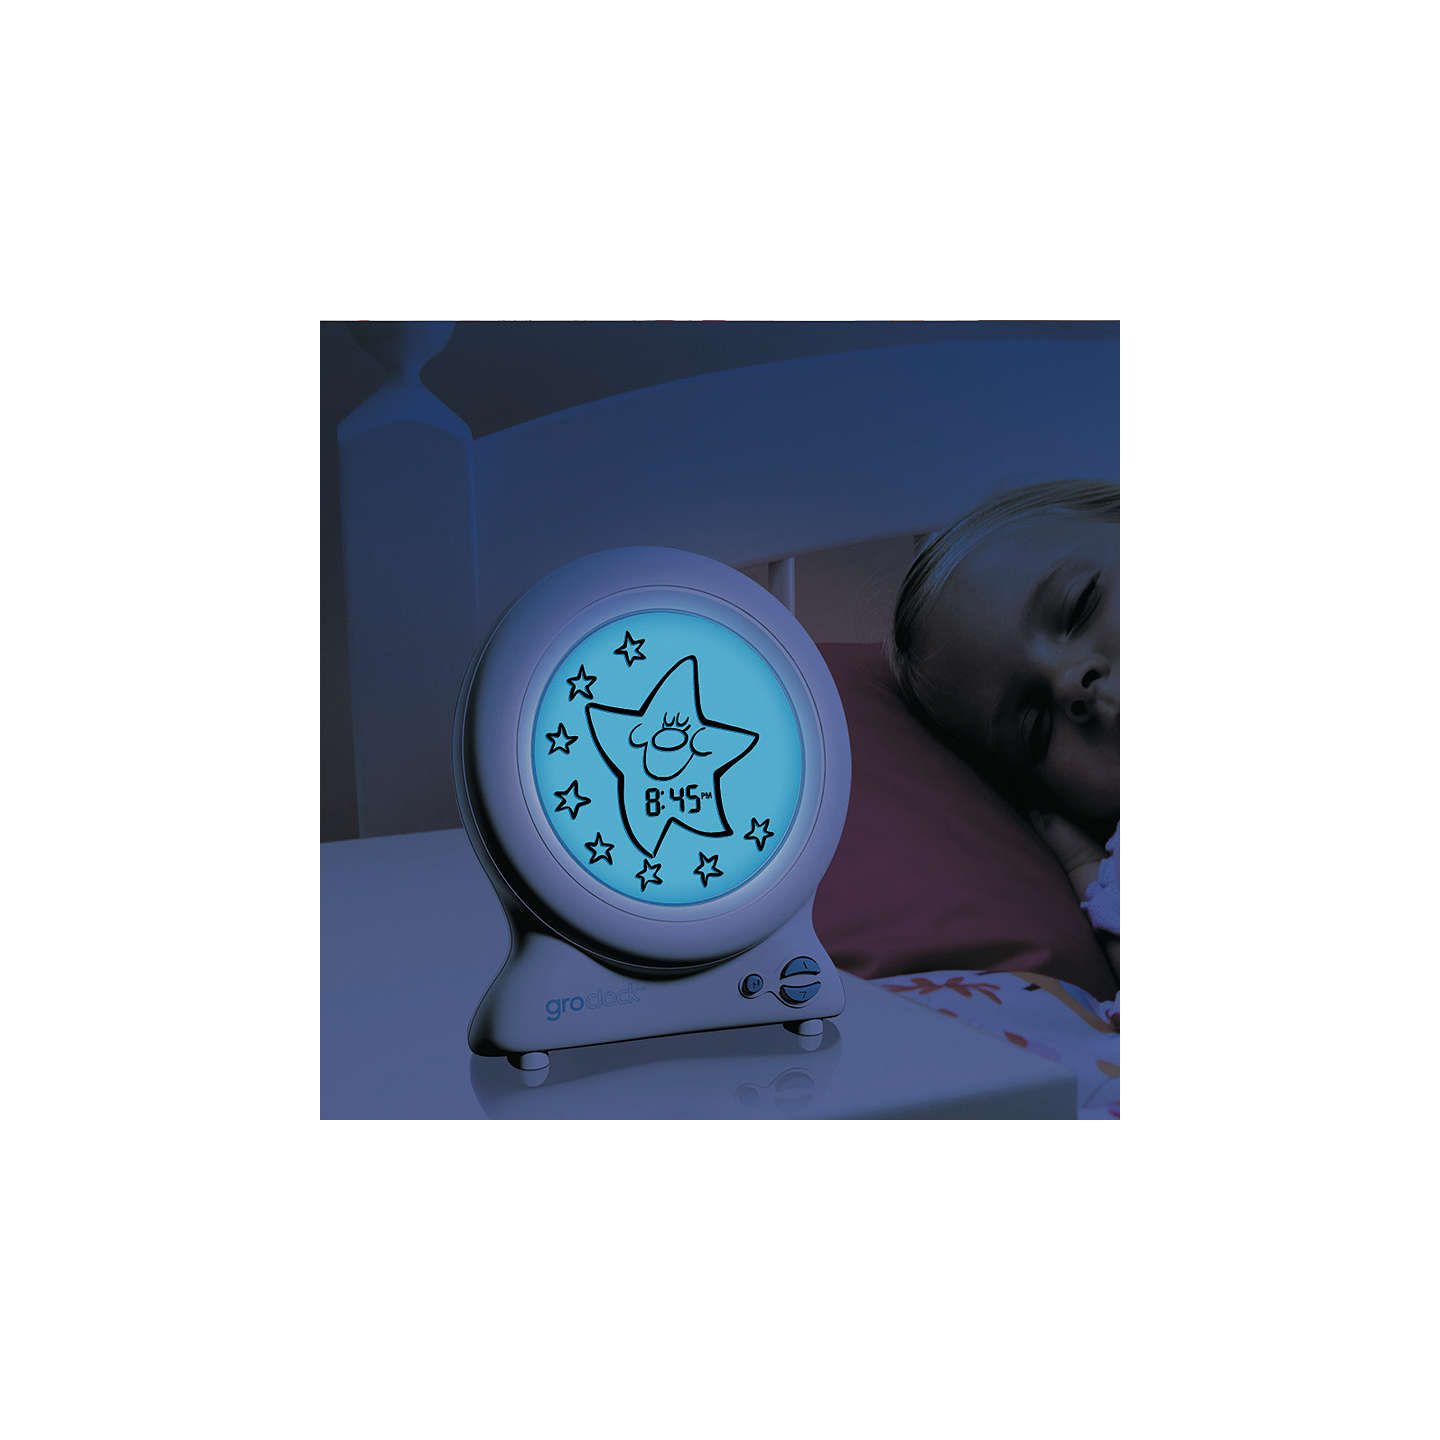 BuyGro-Clock Online at johnlewis.com